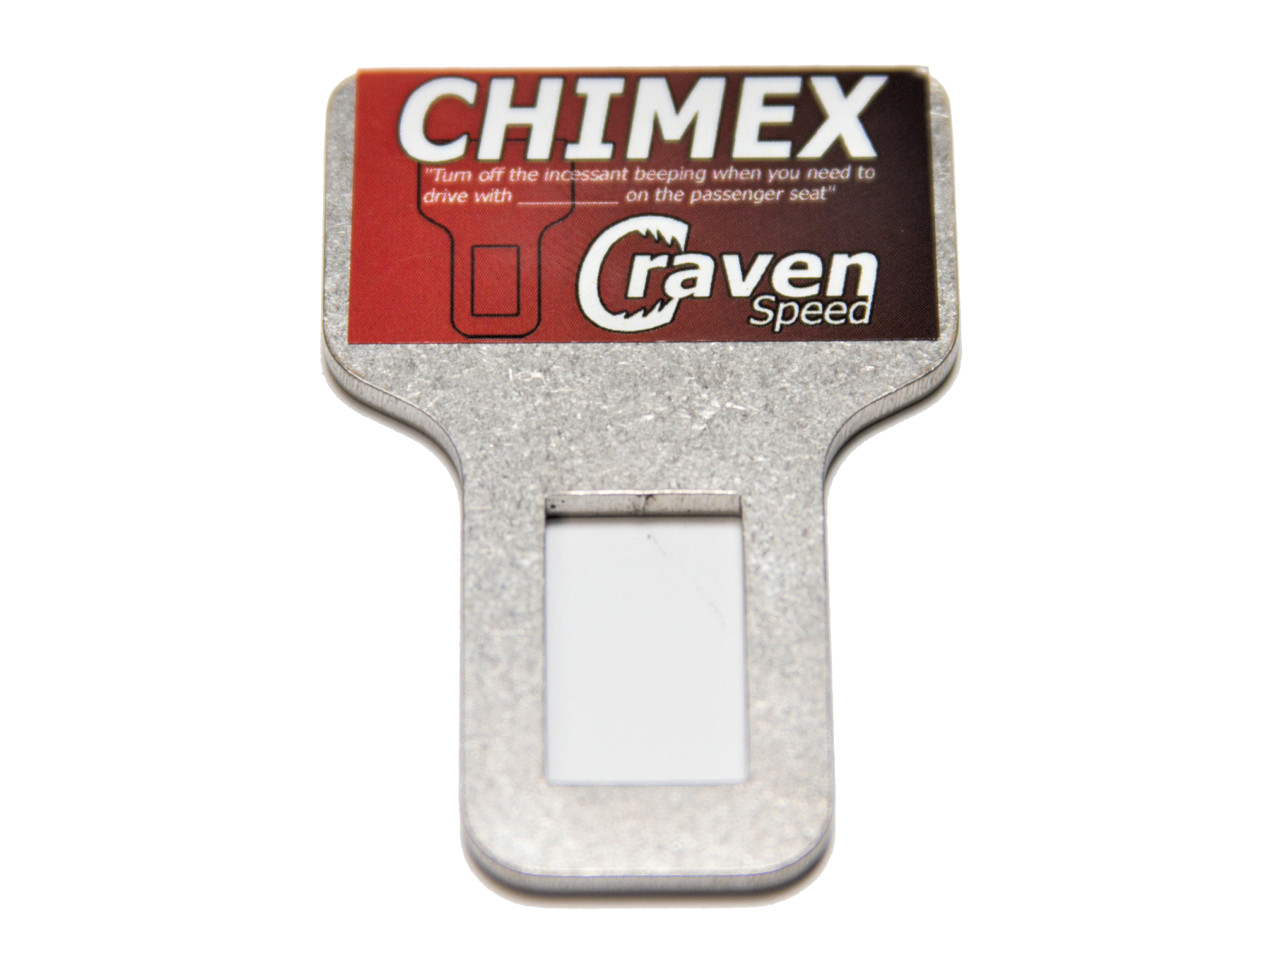 Thumbnail for Chimex for Land Rover